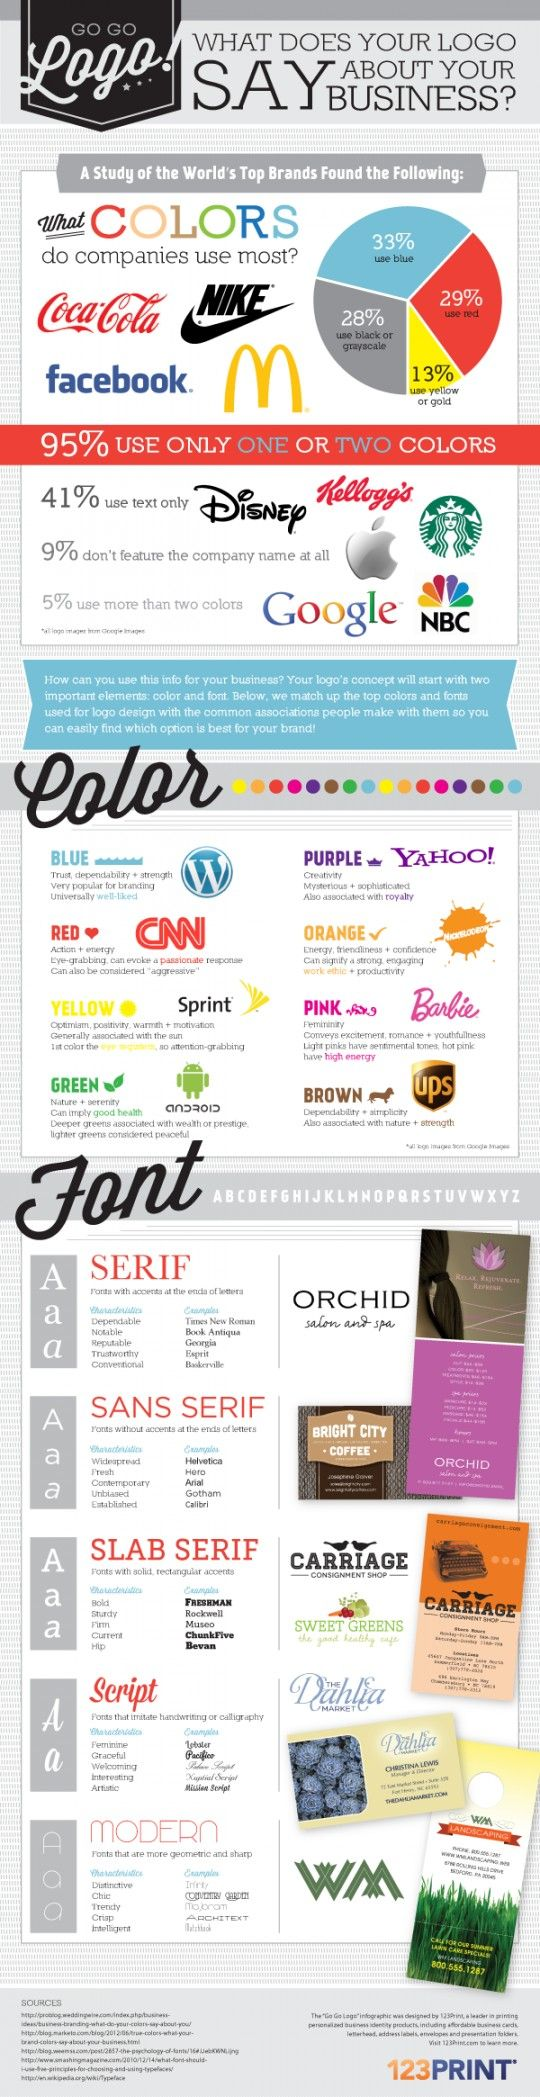 What your logo says about your business